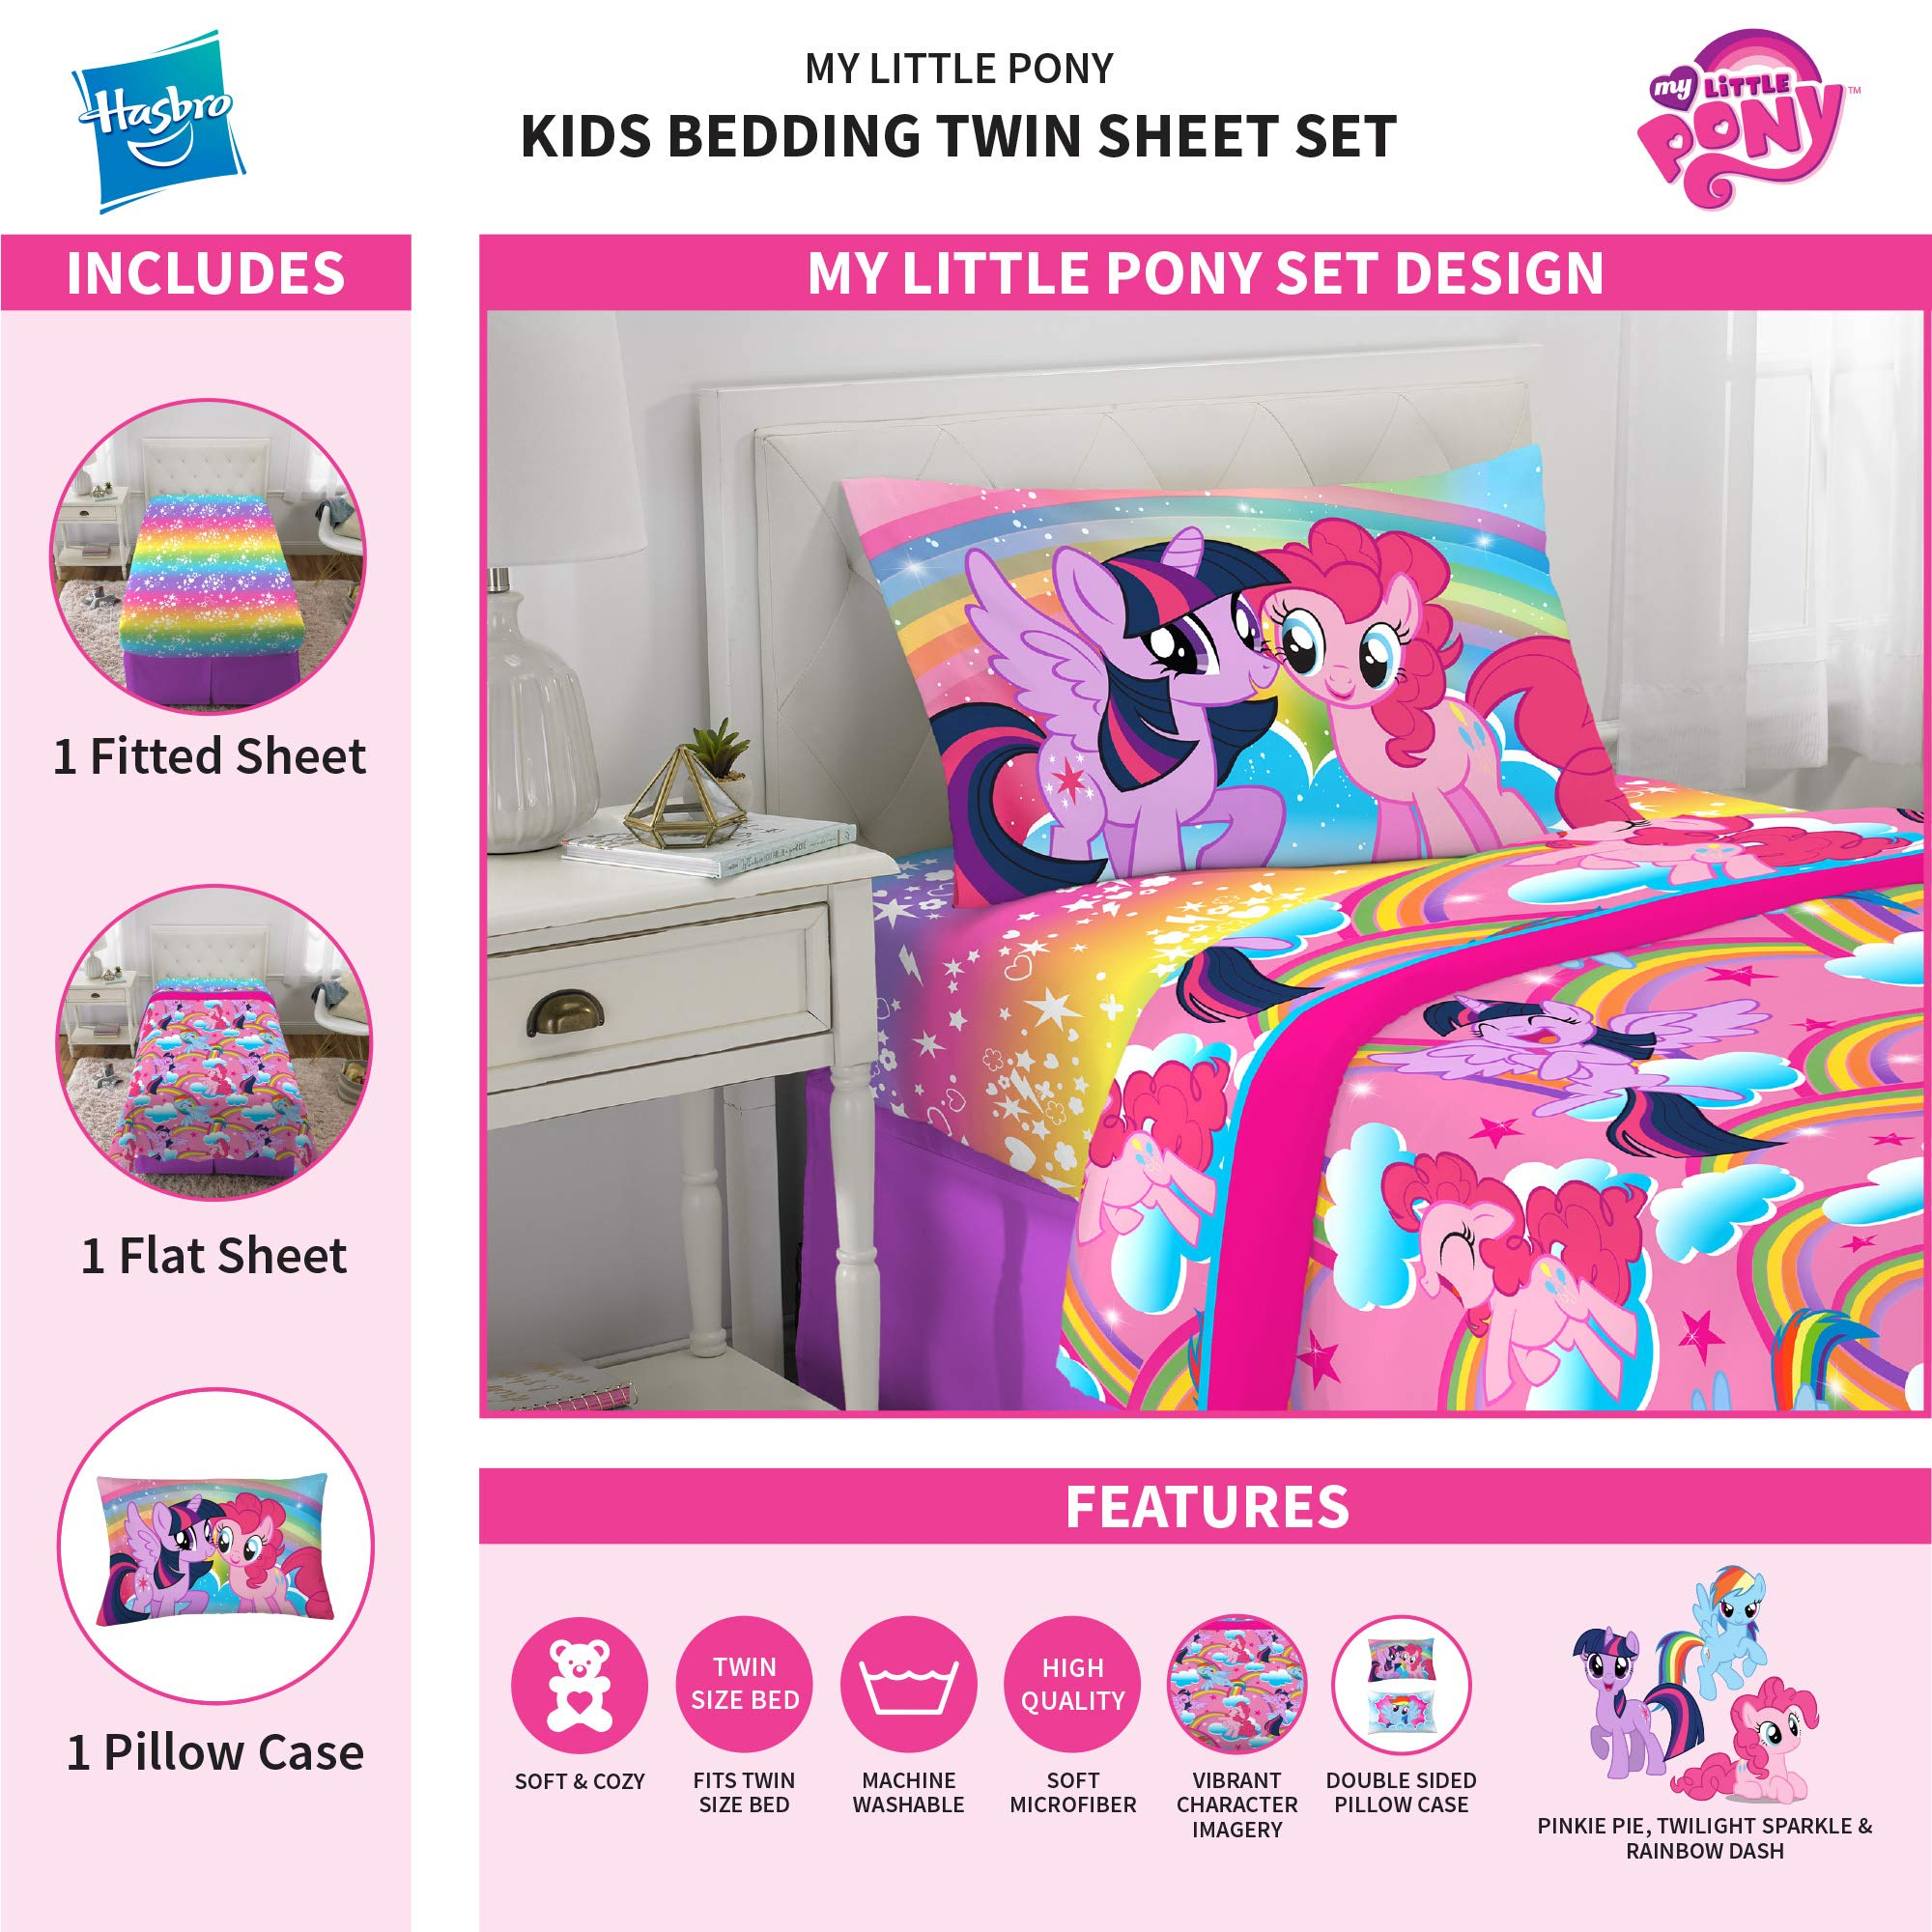 Franco Kids Bedding Super Soft Microfiber Sheet Set, 3 Piece Twin Size, Hasbro My Little Pony by Franco (Image #3)